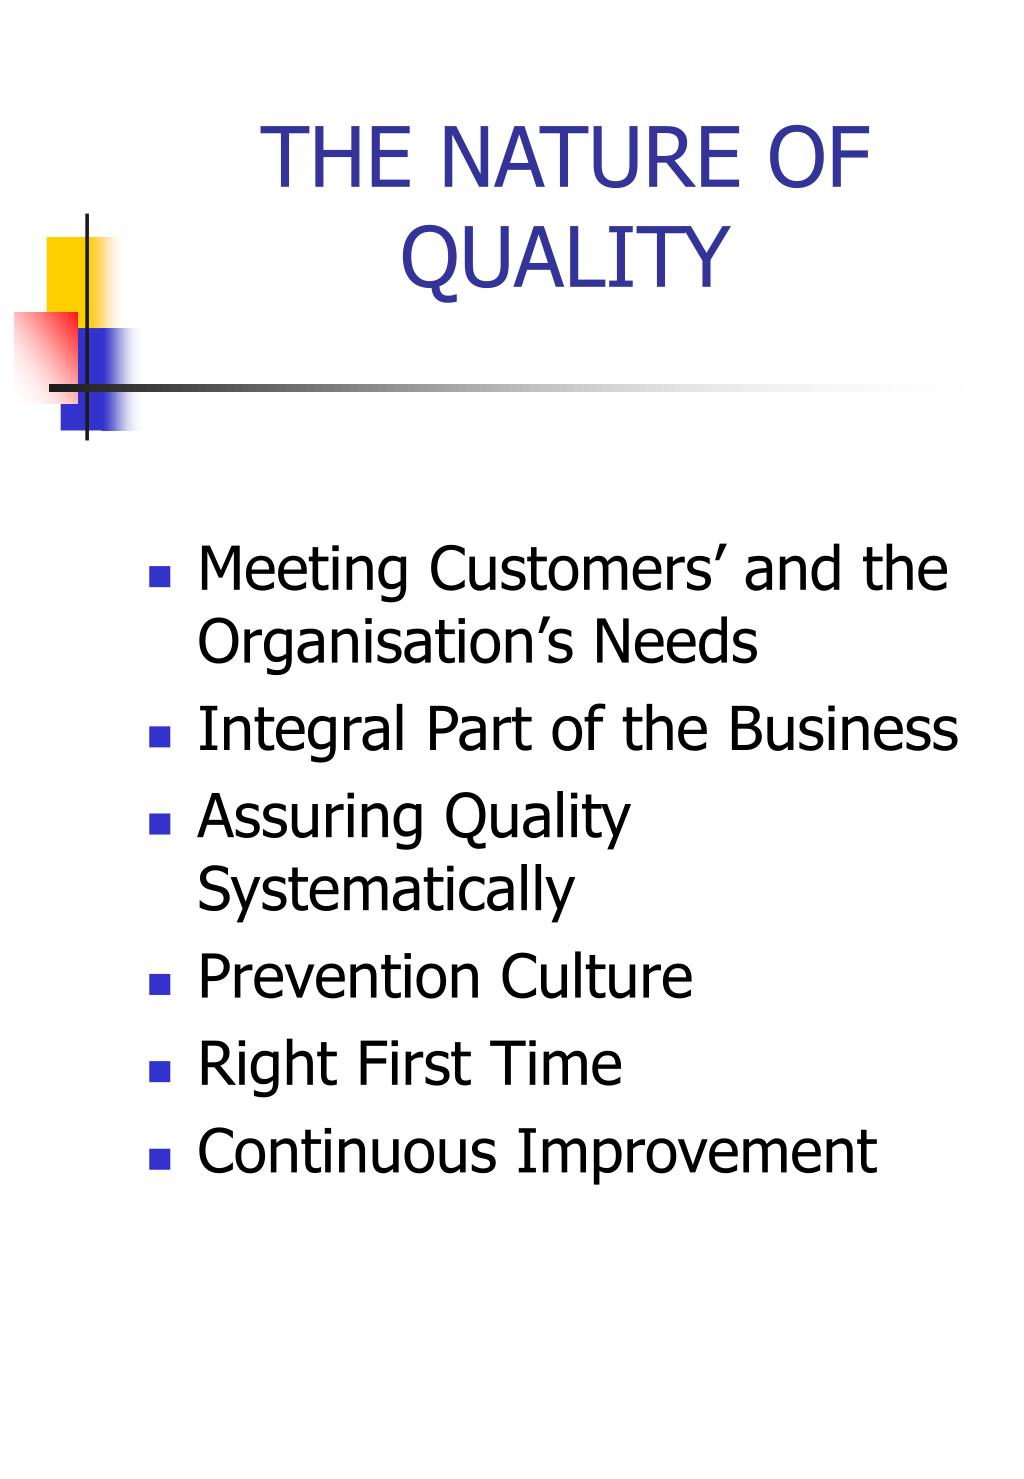 THE NATURE OF QUALITY